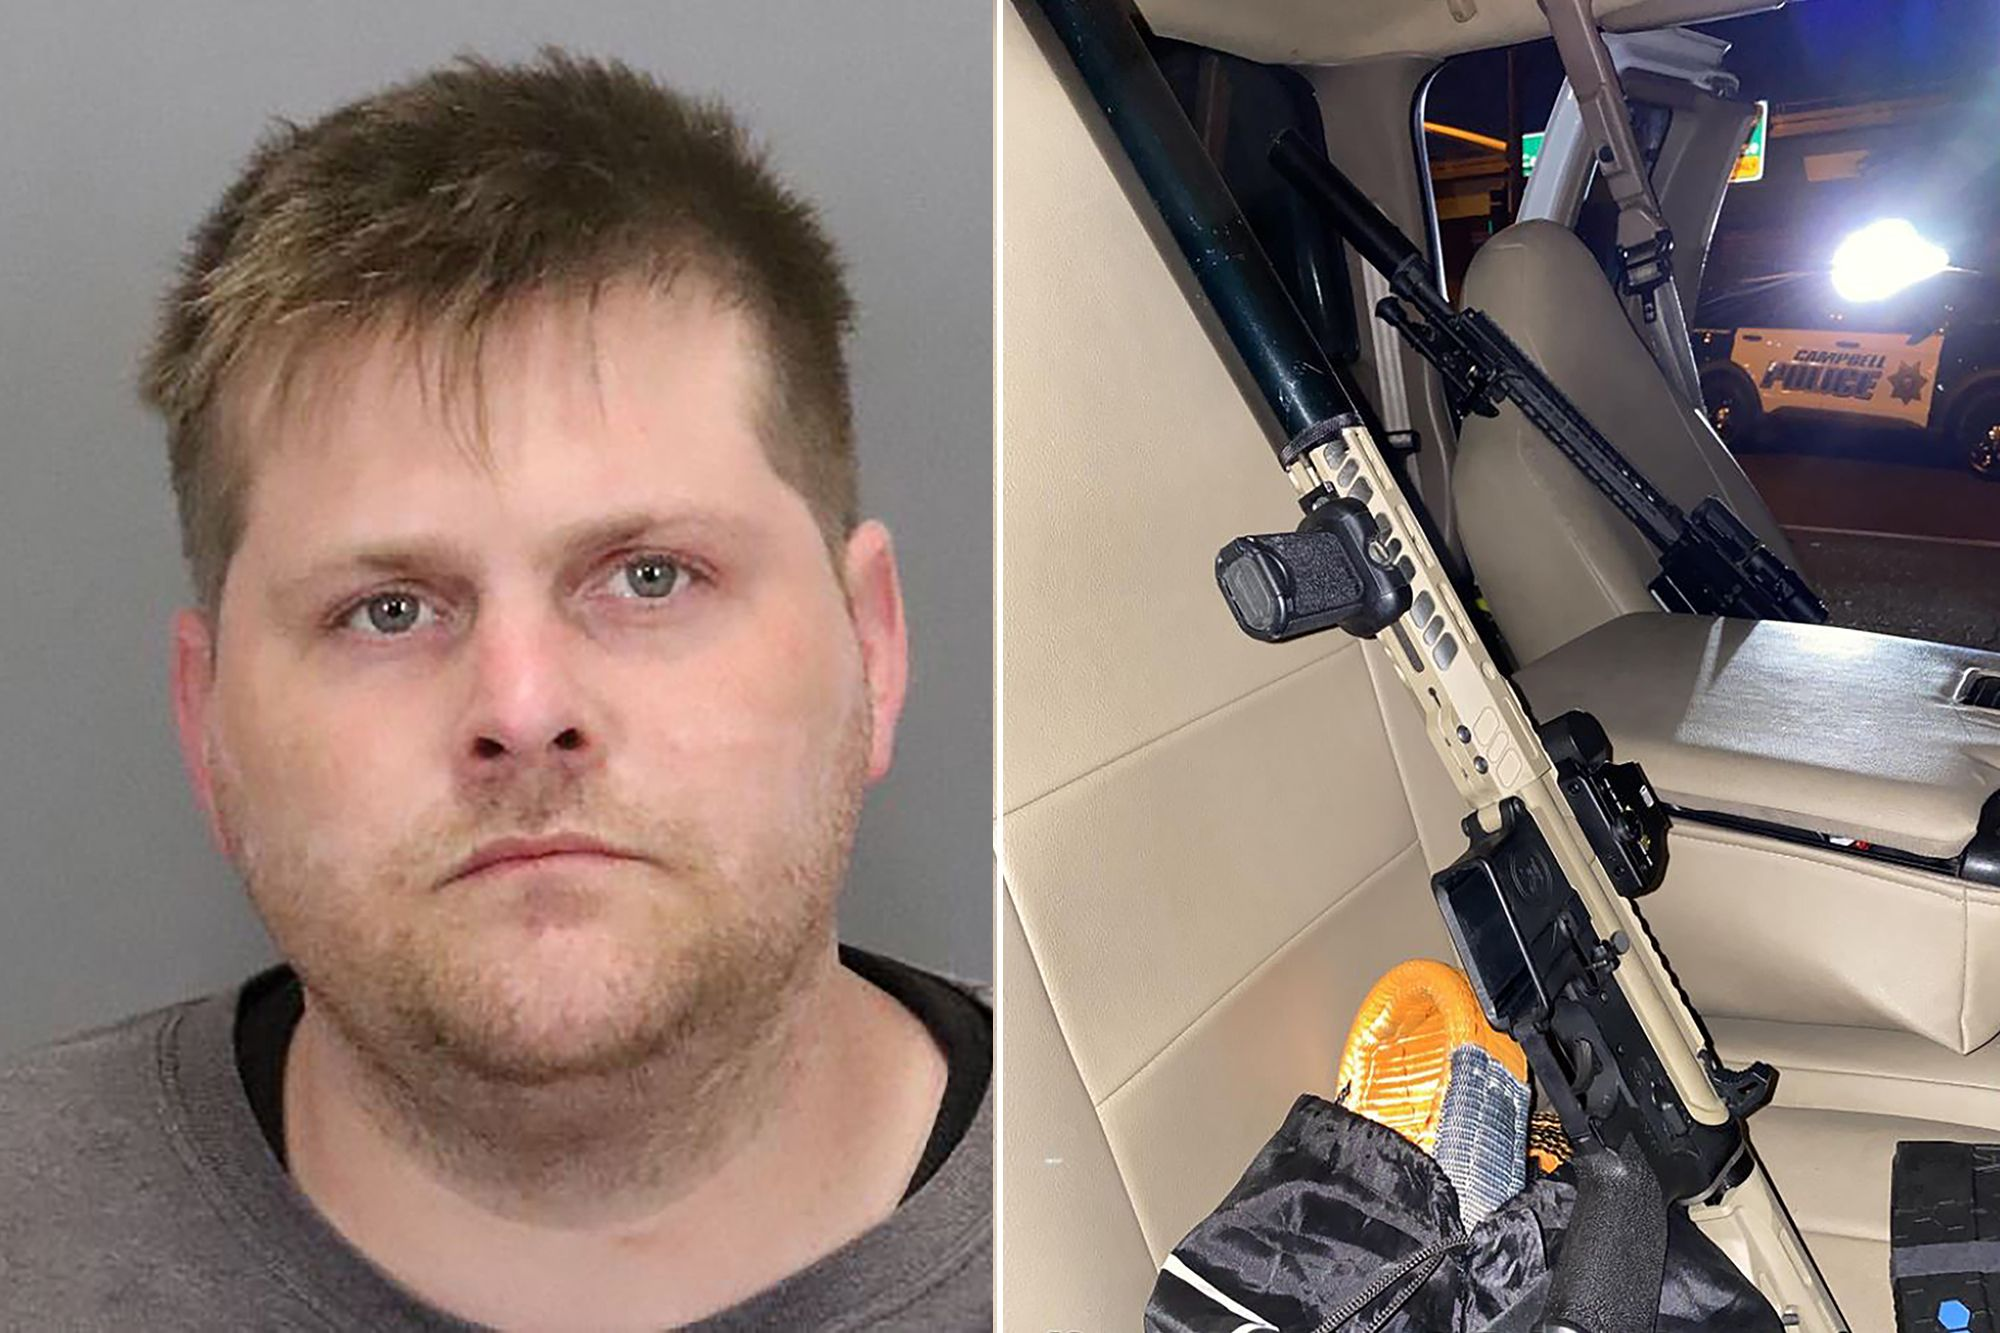 Anti-Jewish manifesto found on California man arrested with ammo, high-powered weapons